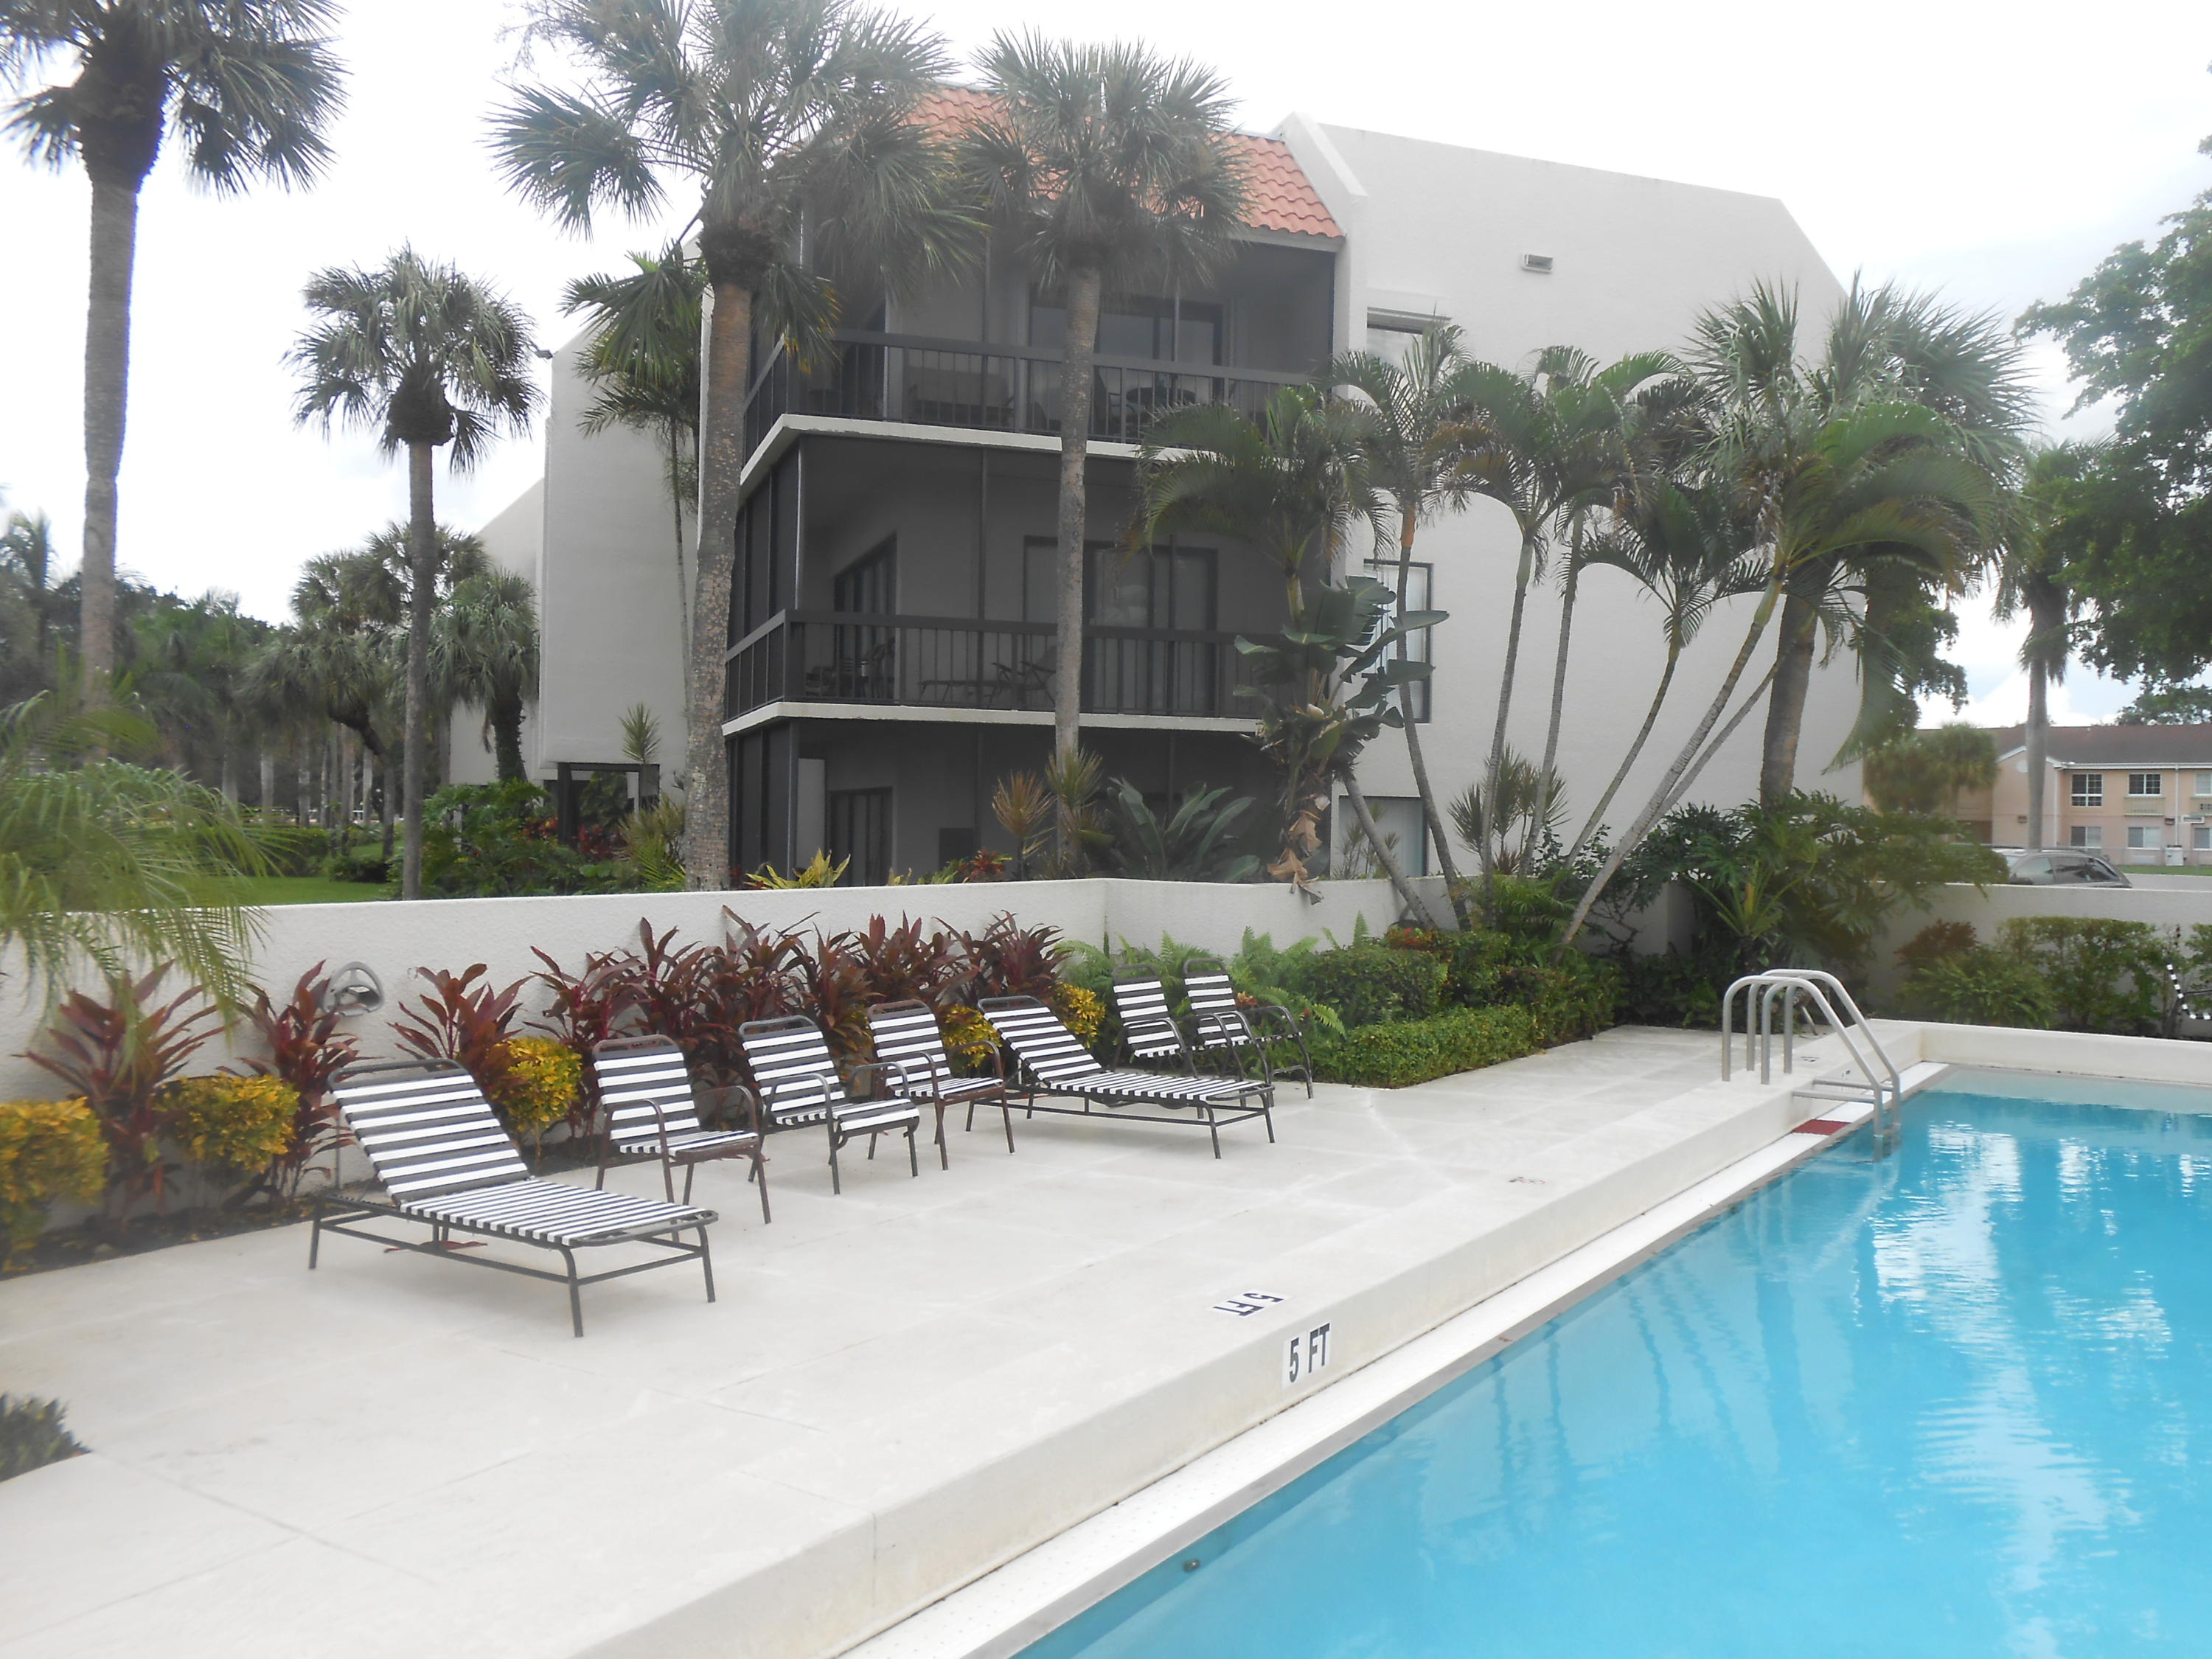 Home for sale in LANDS OF THE PRESIDENT CONDO 8The Senate West Palm Beach Florida